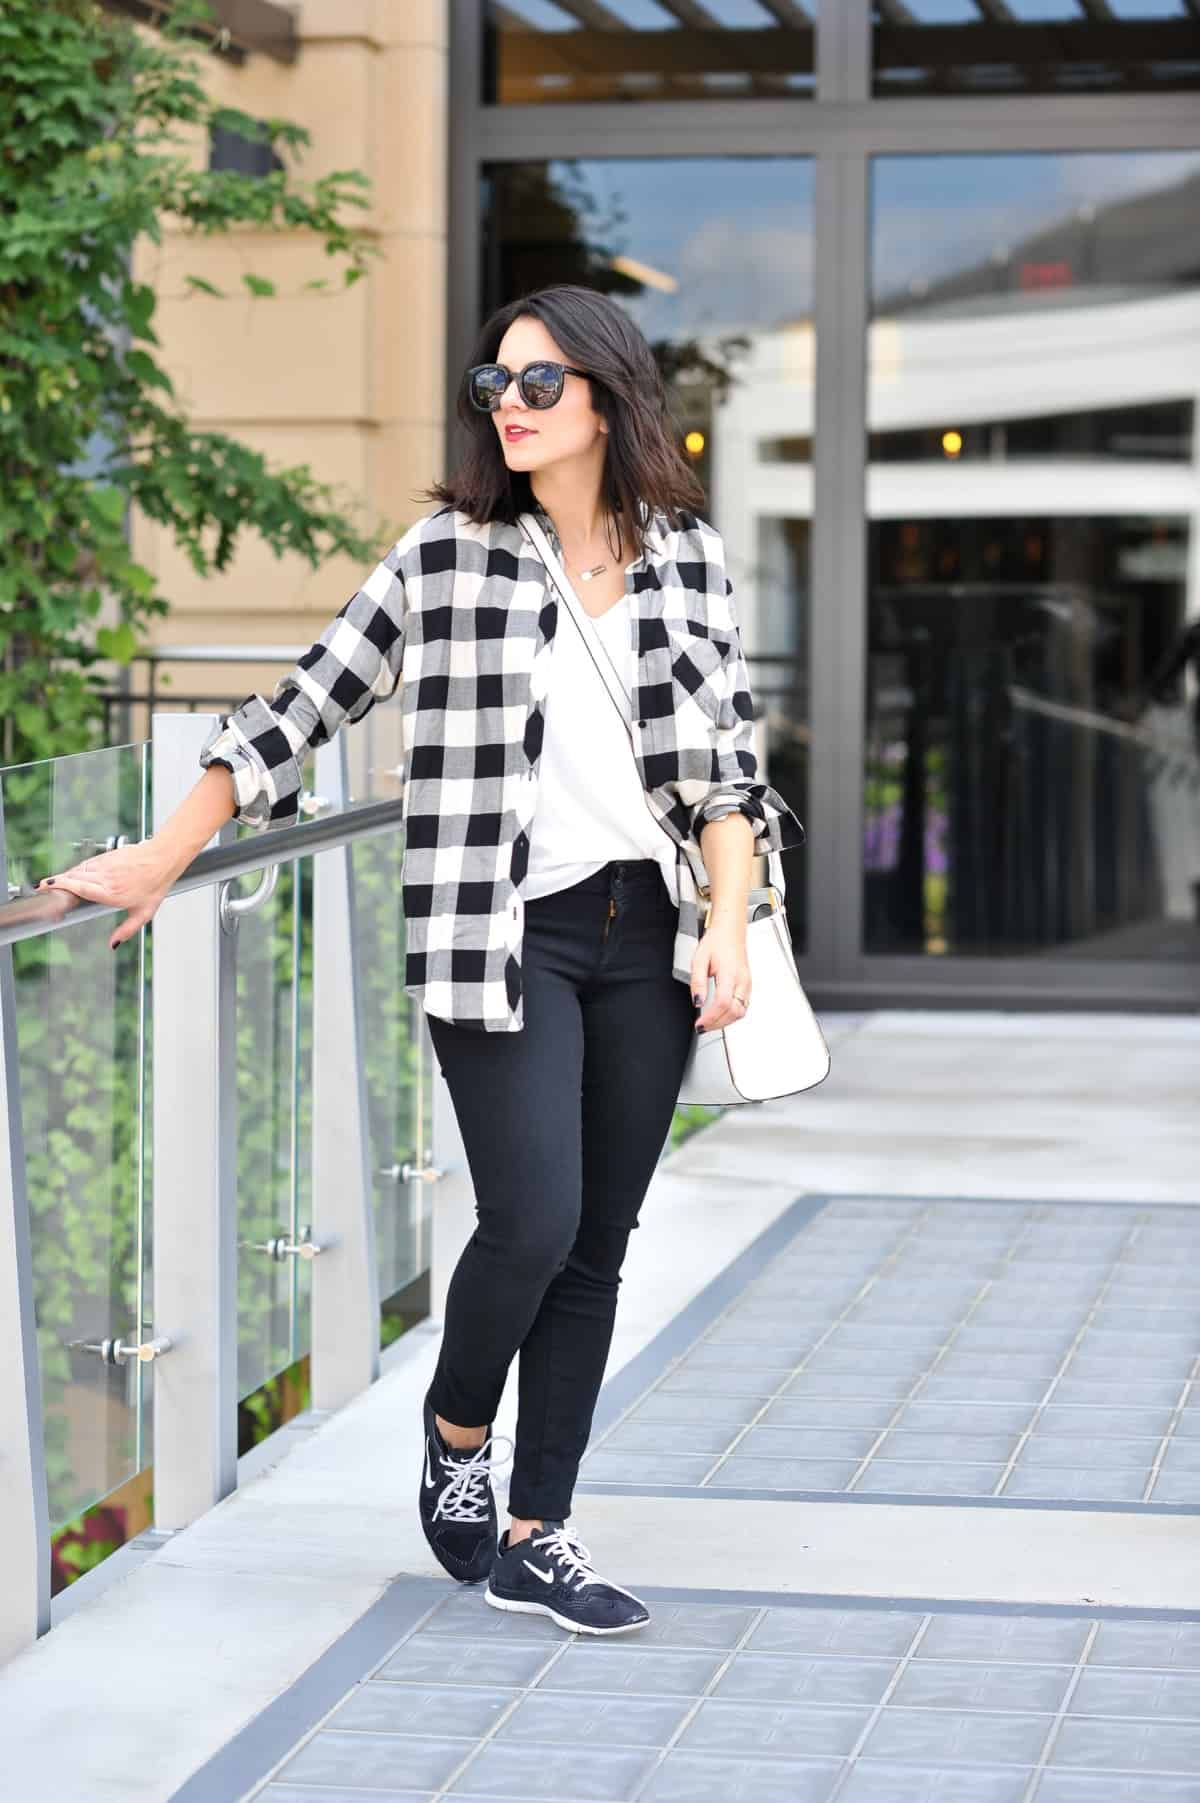 ... Black and white, buffalo plaid, fall outfit ideas via @mystylevita ...